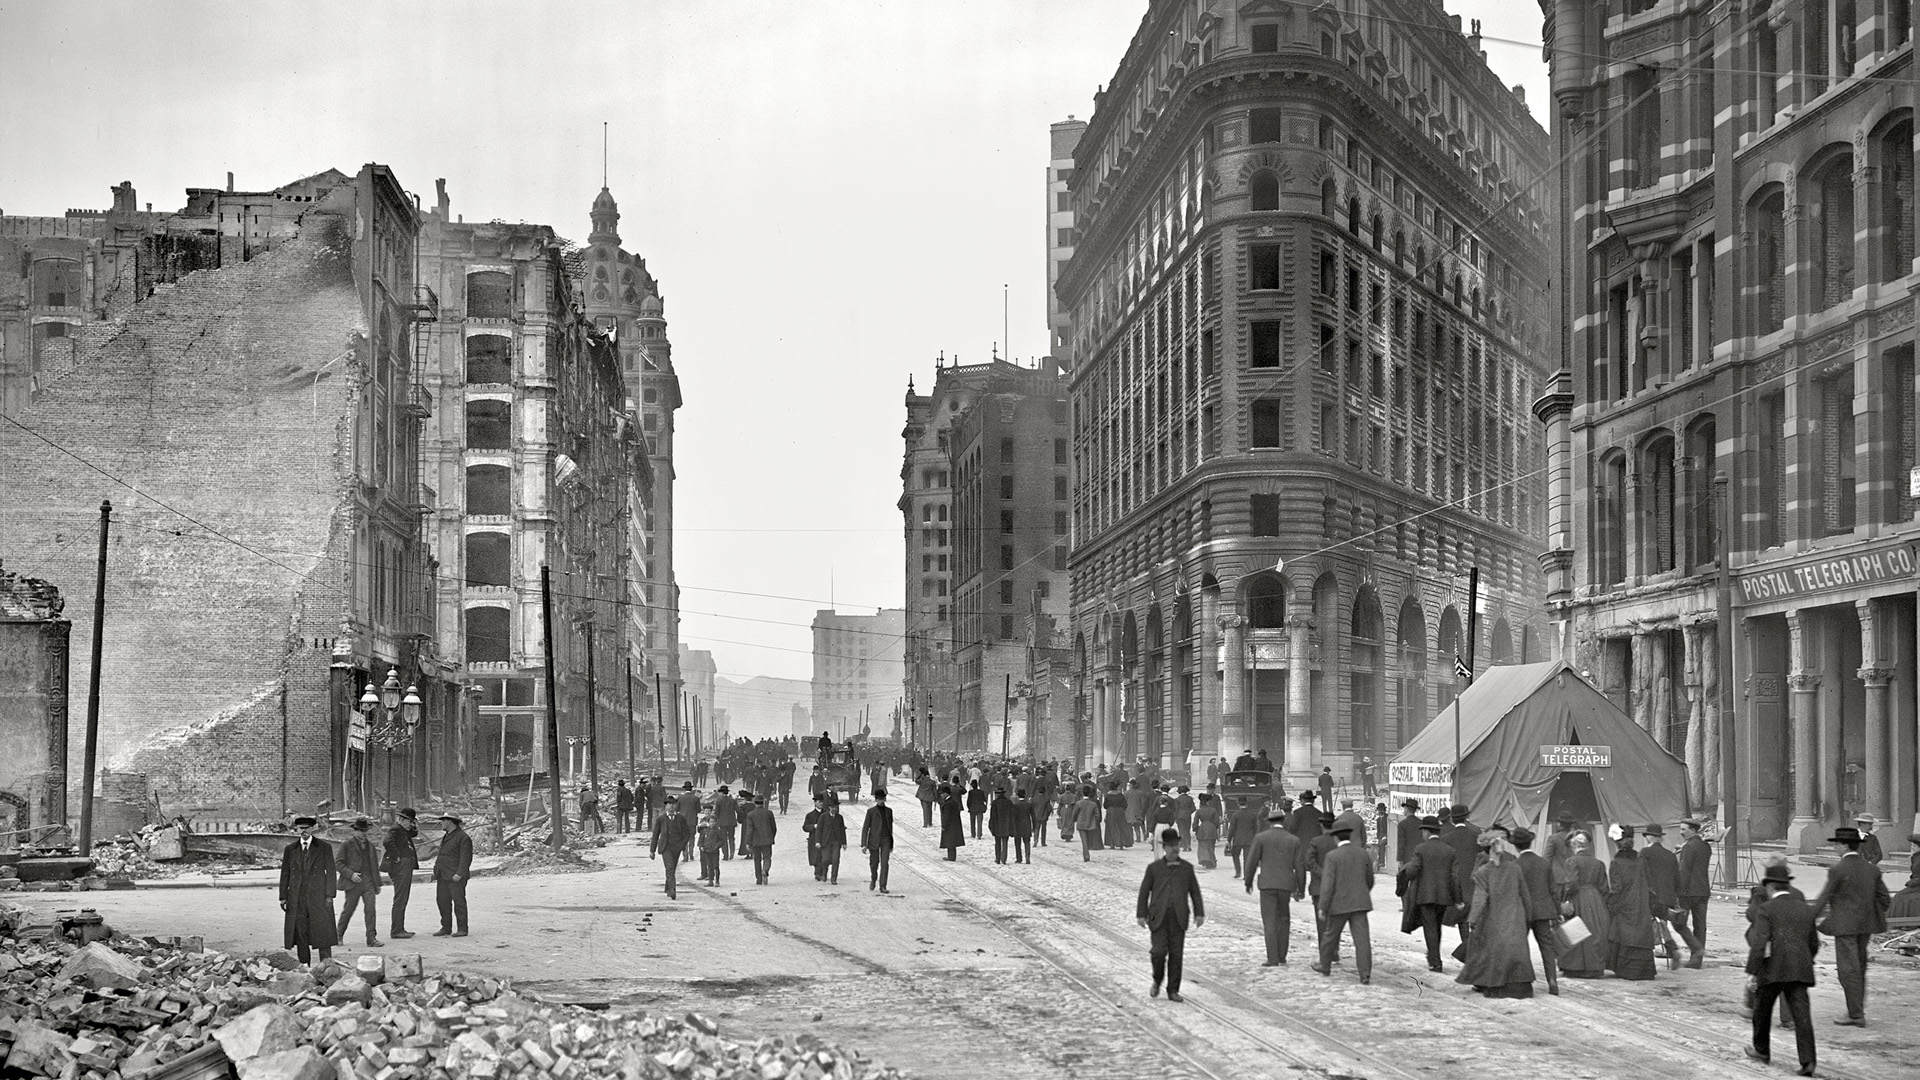 Market Street after the Earthquake, before the fire, 1906